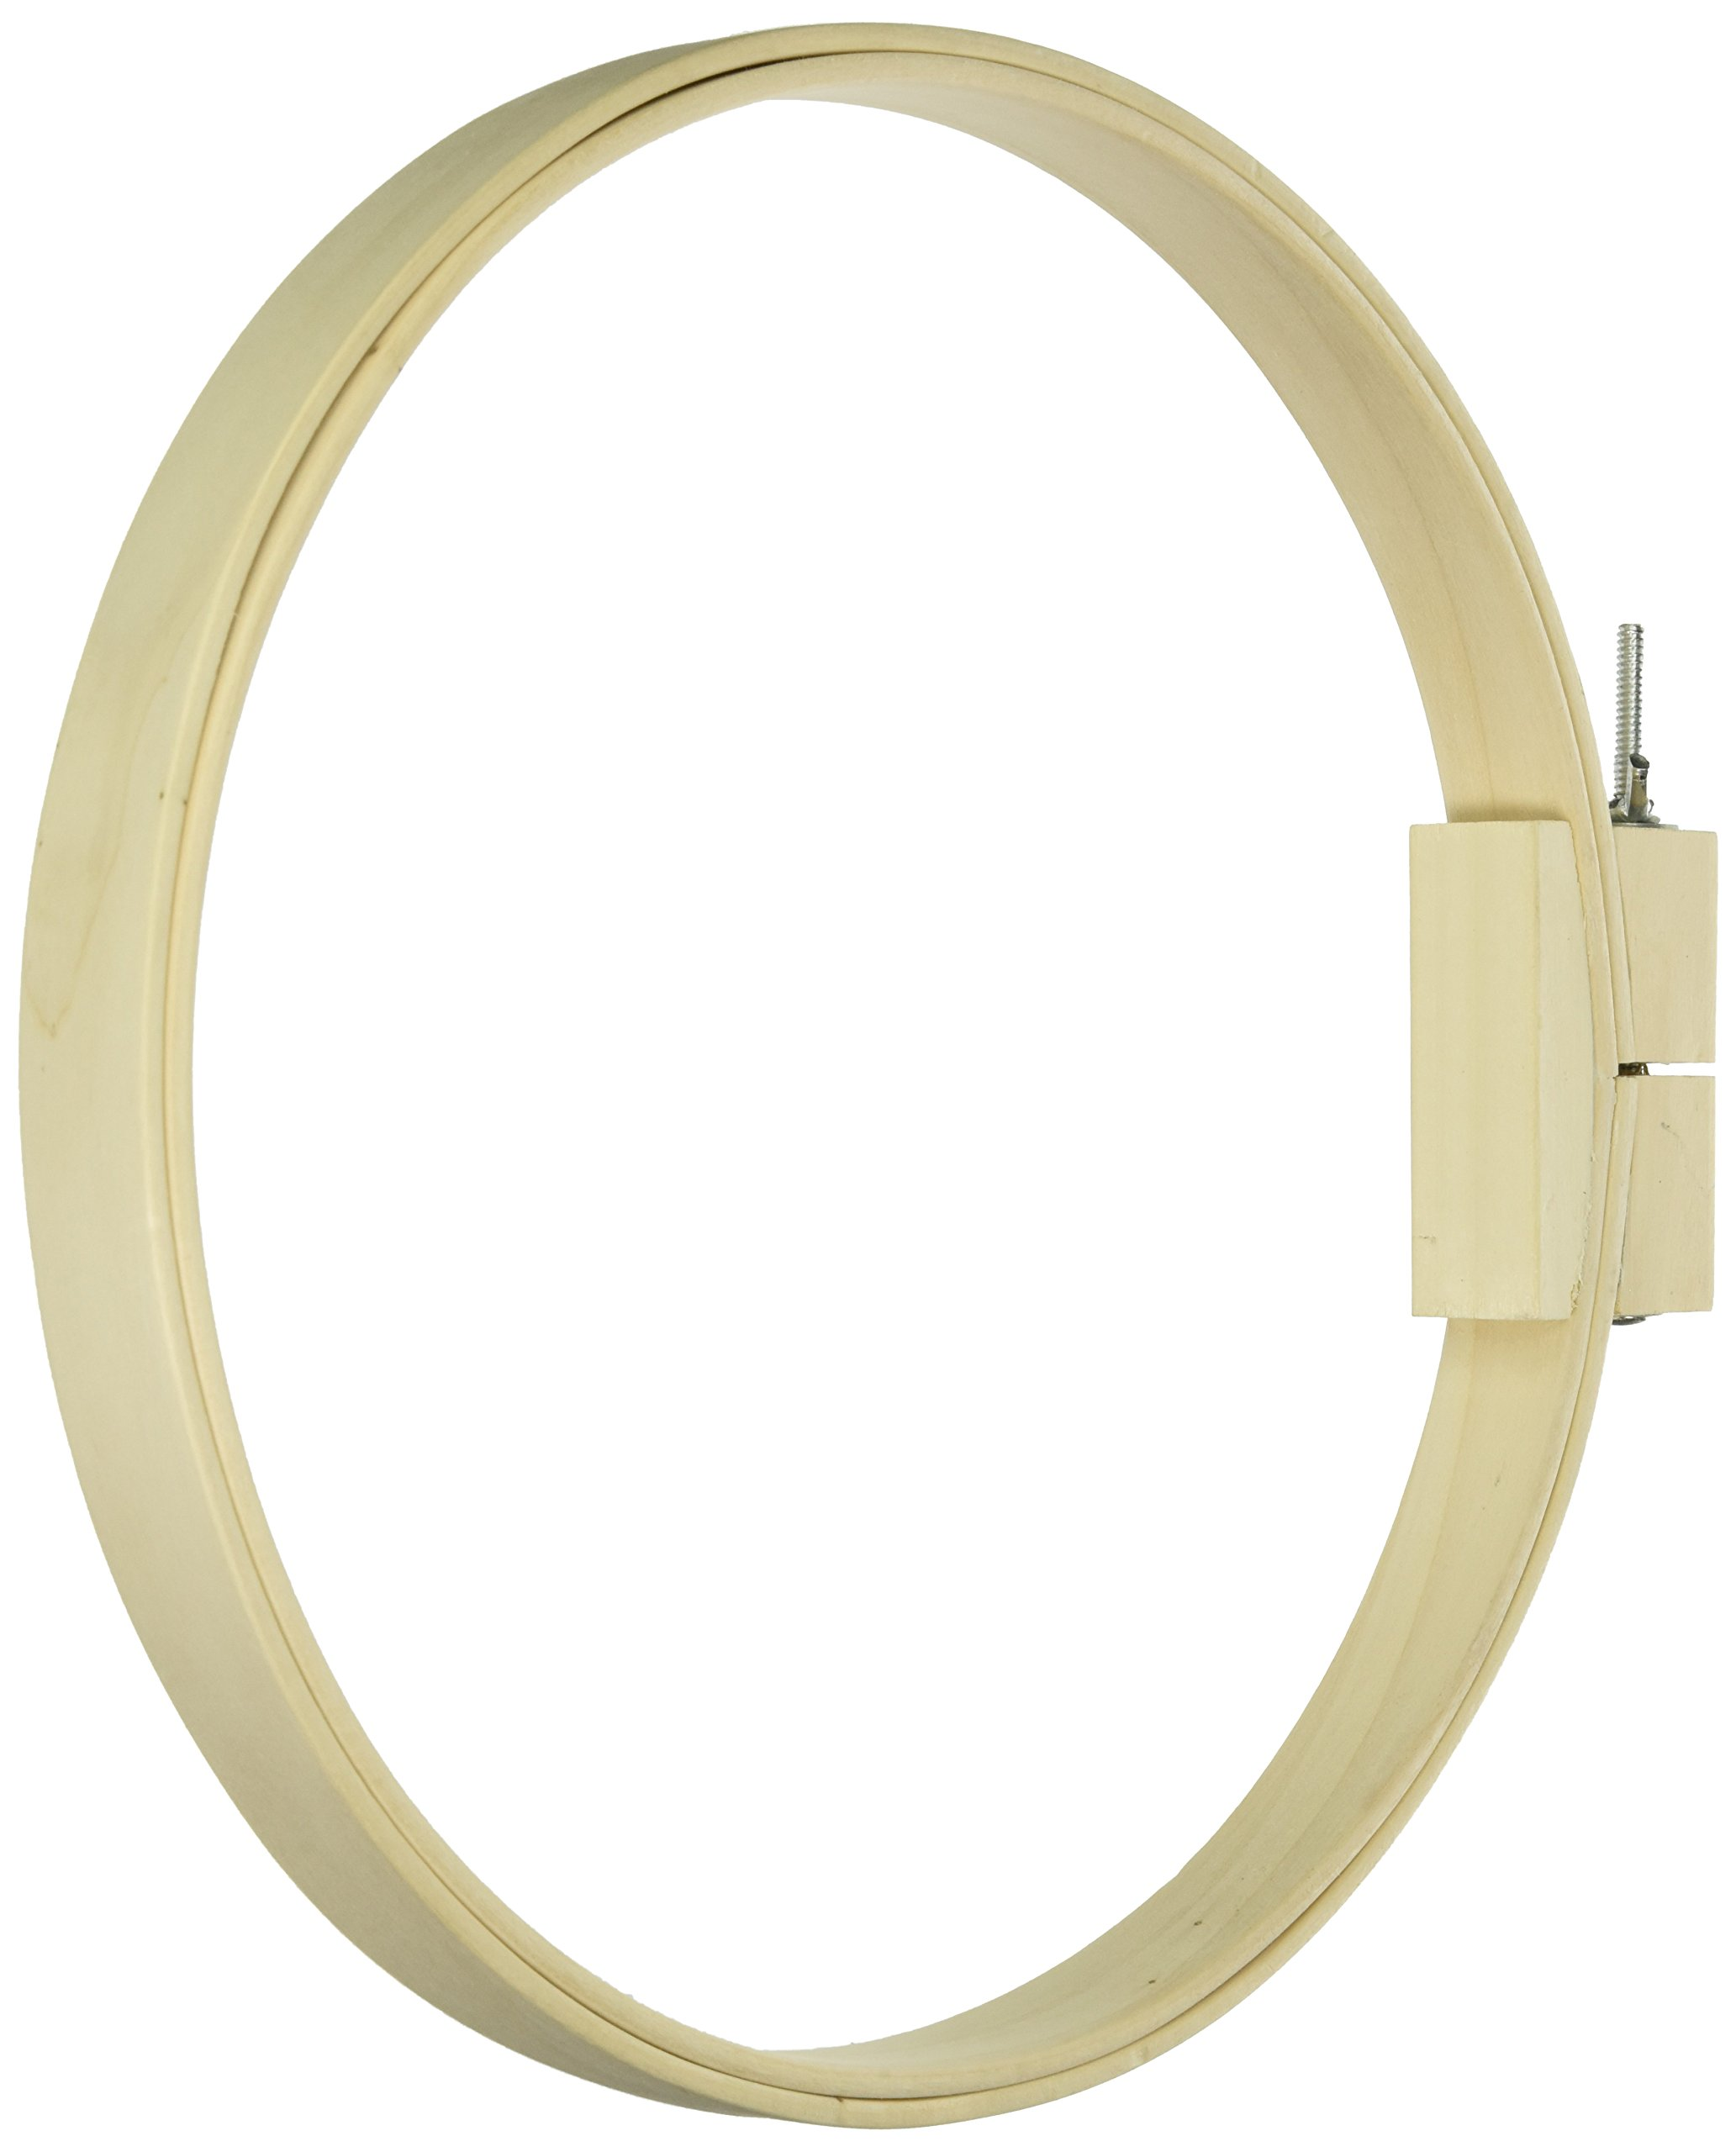 Frank A. Edmunds 12-inch Round Wood Quilt Hoop,5588 by Frank Edmunds & Co.